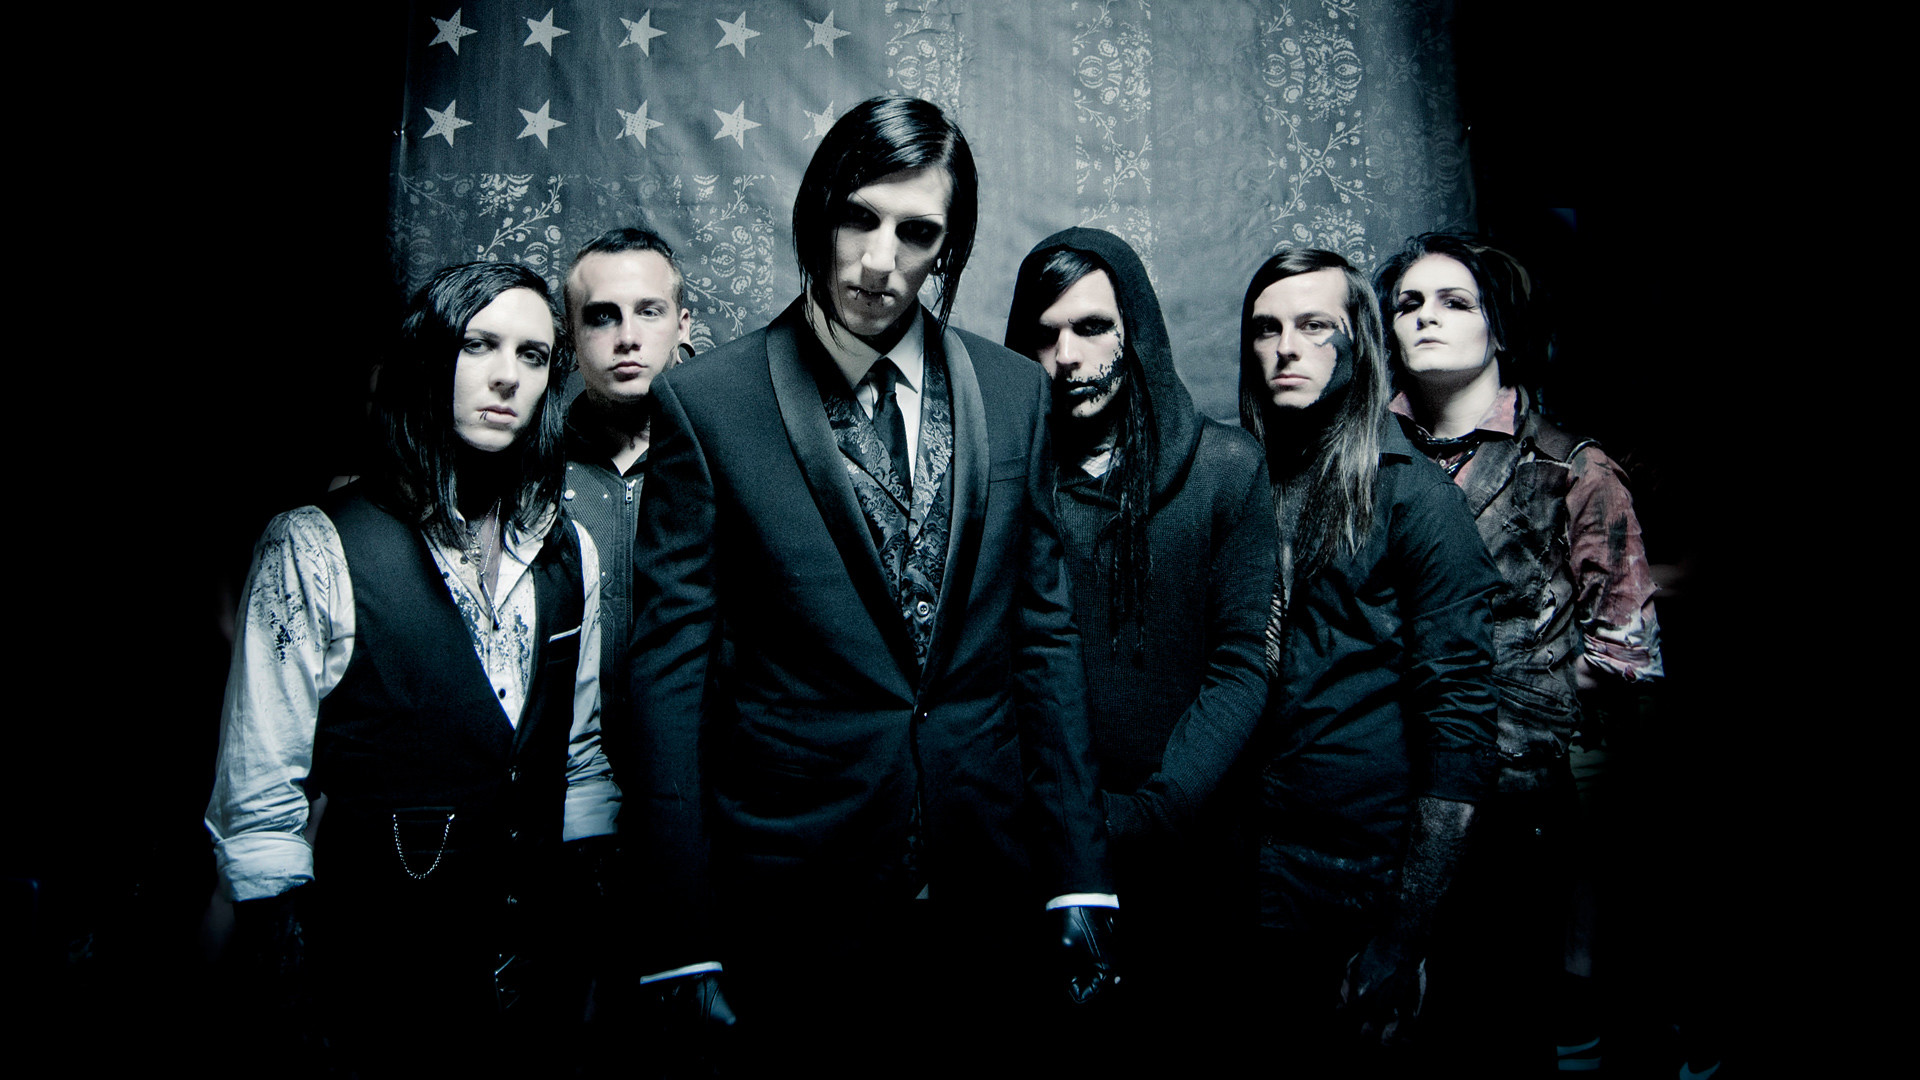 1920x1080 Motionless in white desktop clipart